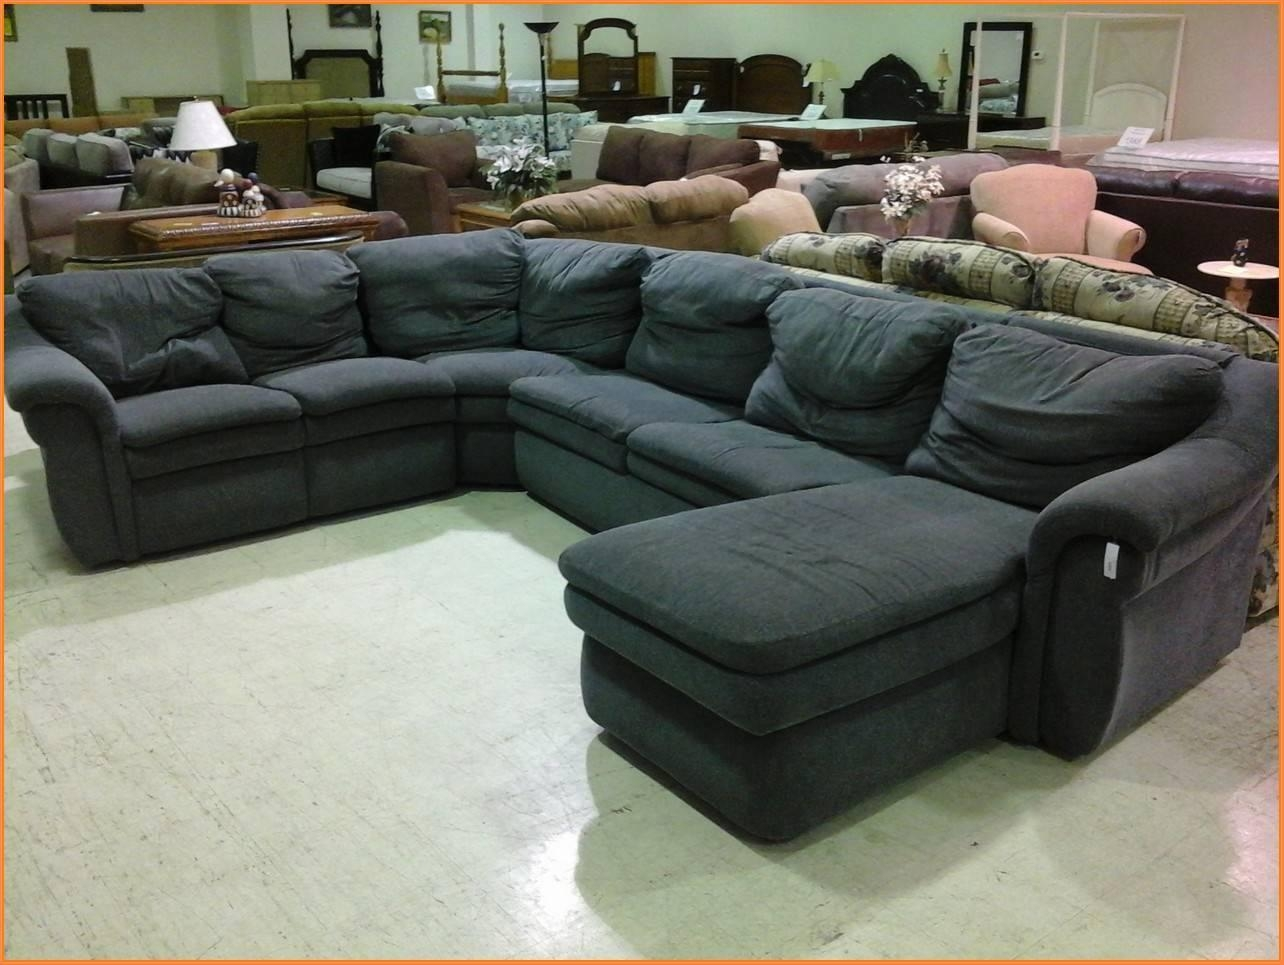 Sofas Center : Inspirational Lazy Boy Sectional Sofa In Office Within Lazyboy Sectional Sofa (View 5 of 20)